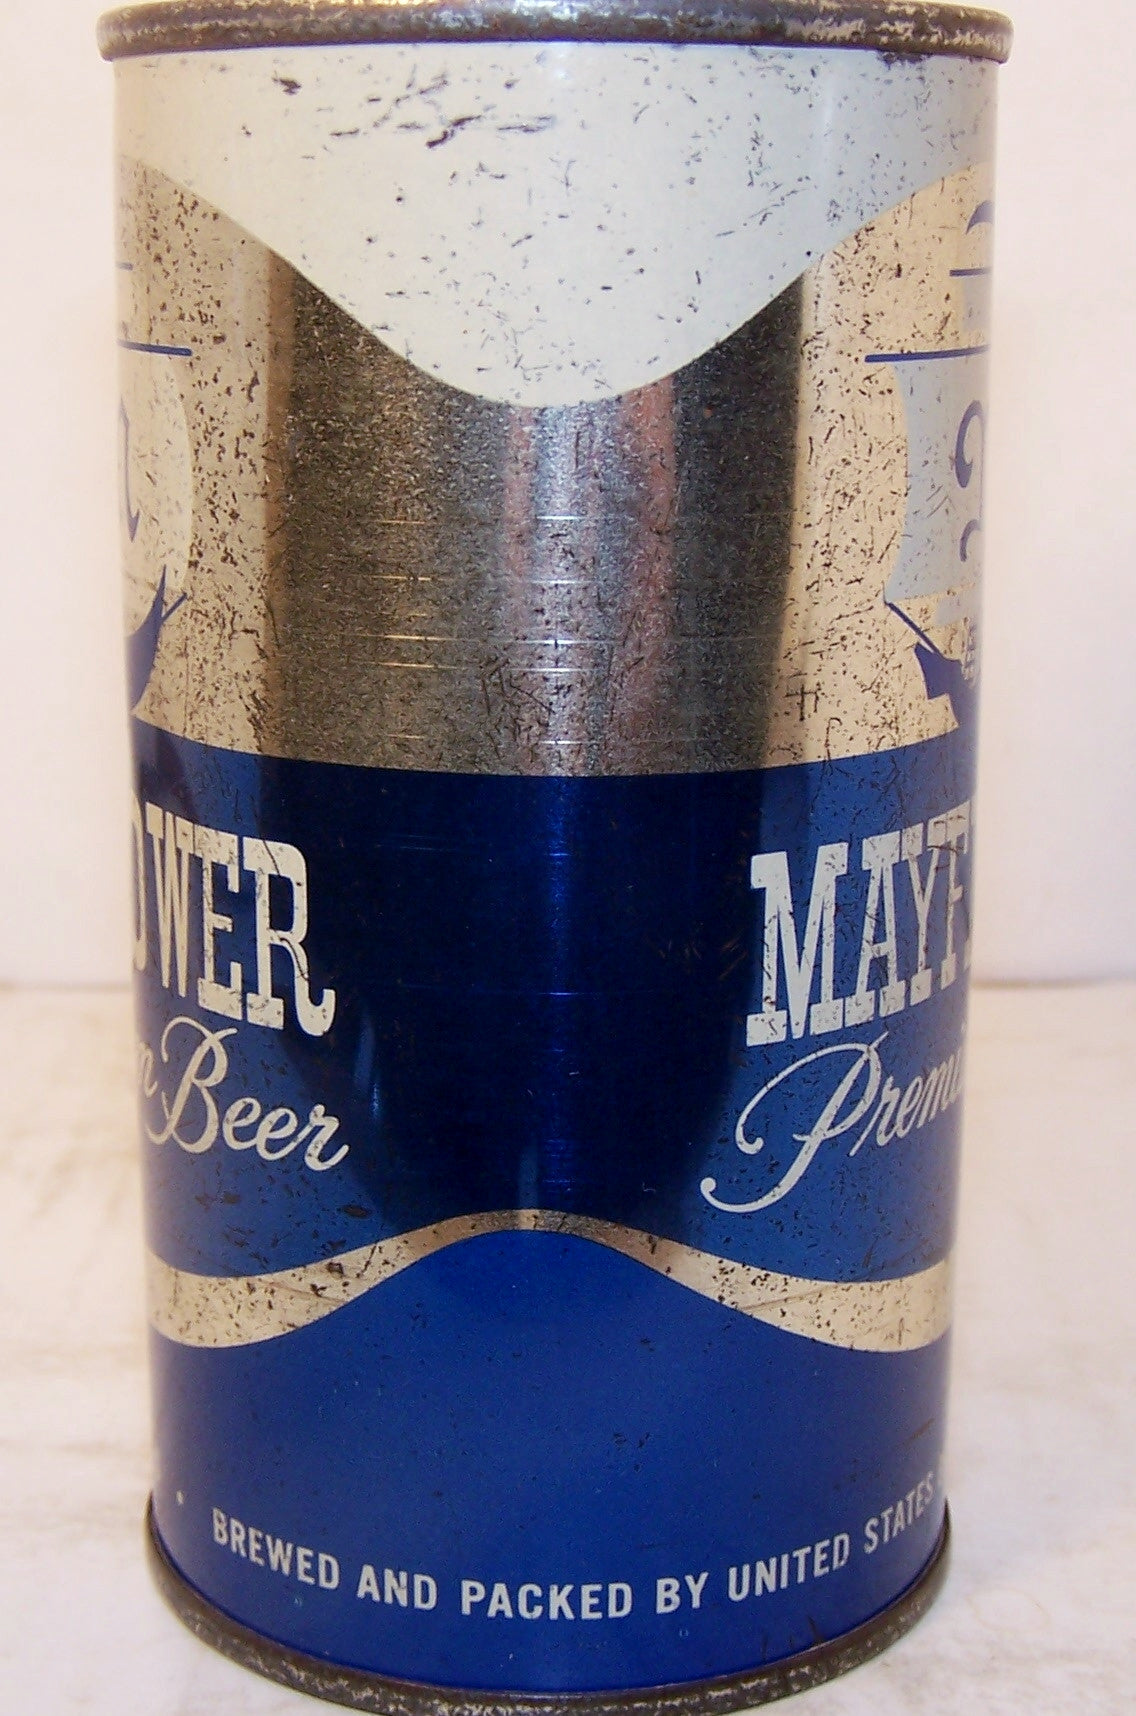 Mayflower Premium Beer, USBC 94-40, Grade 1- Sold on 10/28/18